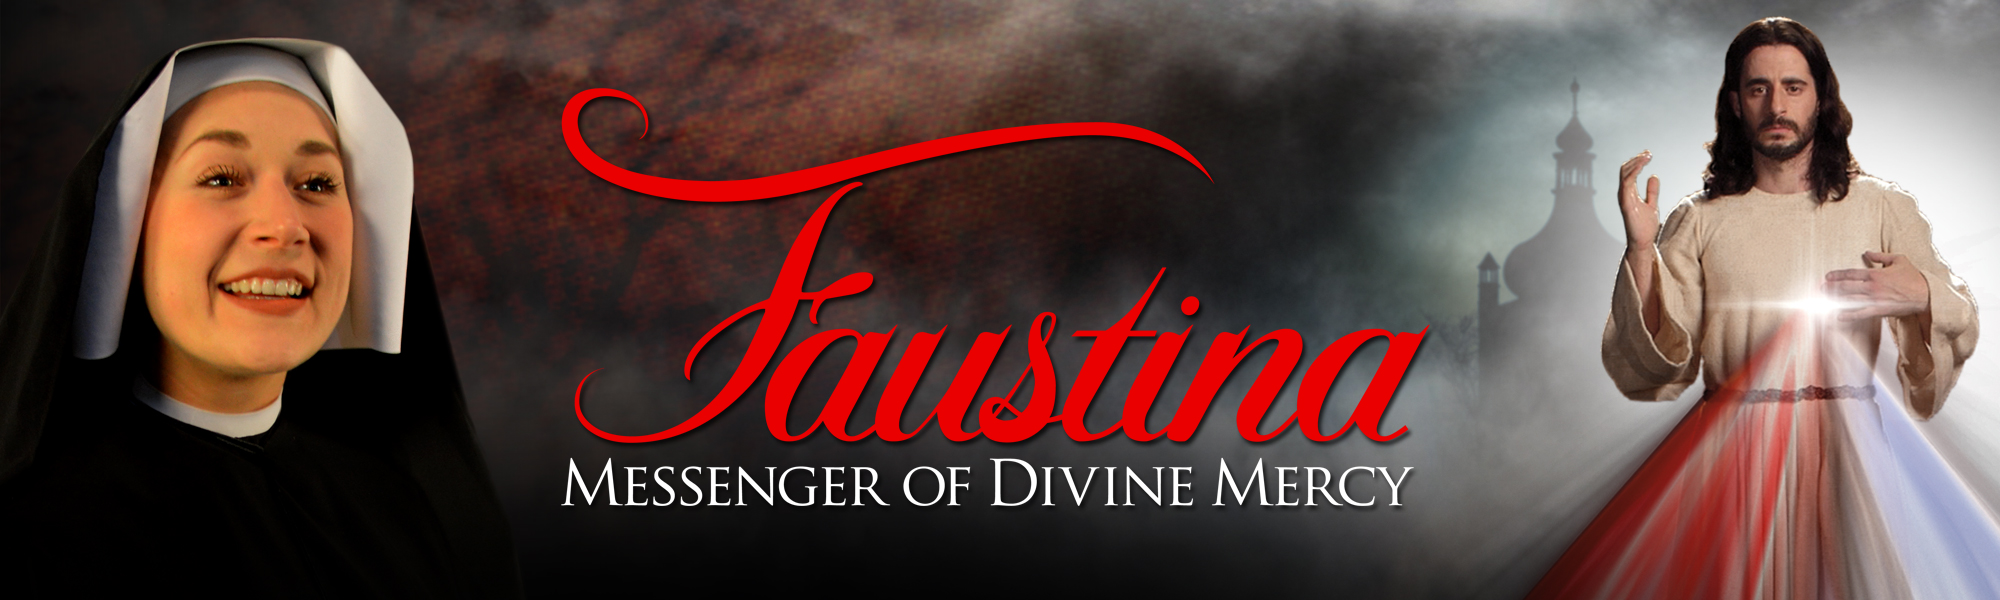 The Actress | Faustina: Messenger of Divine Mercy